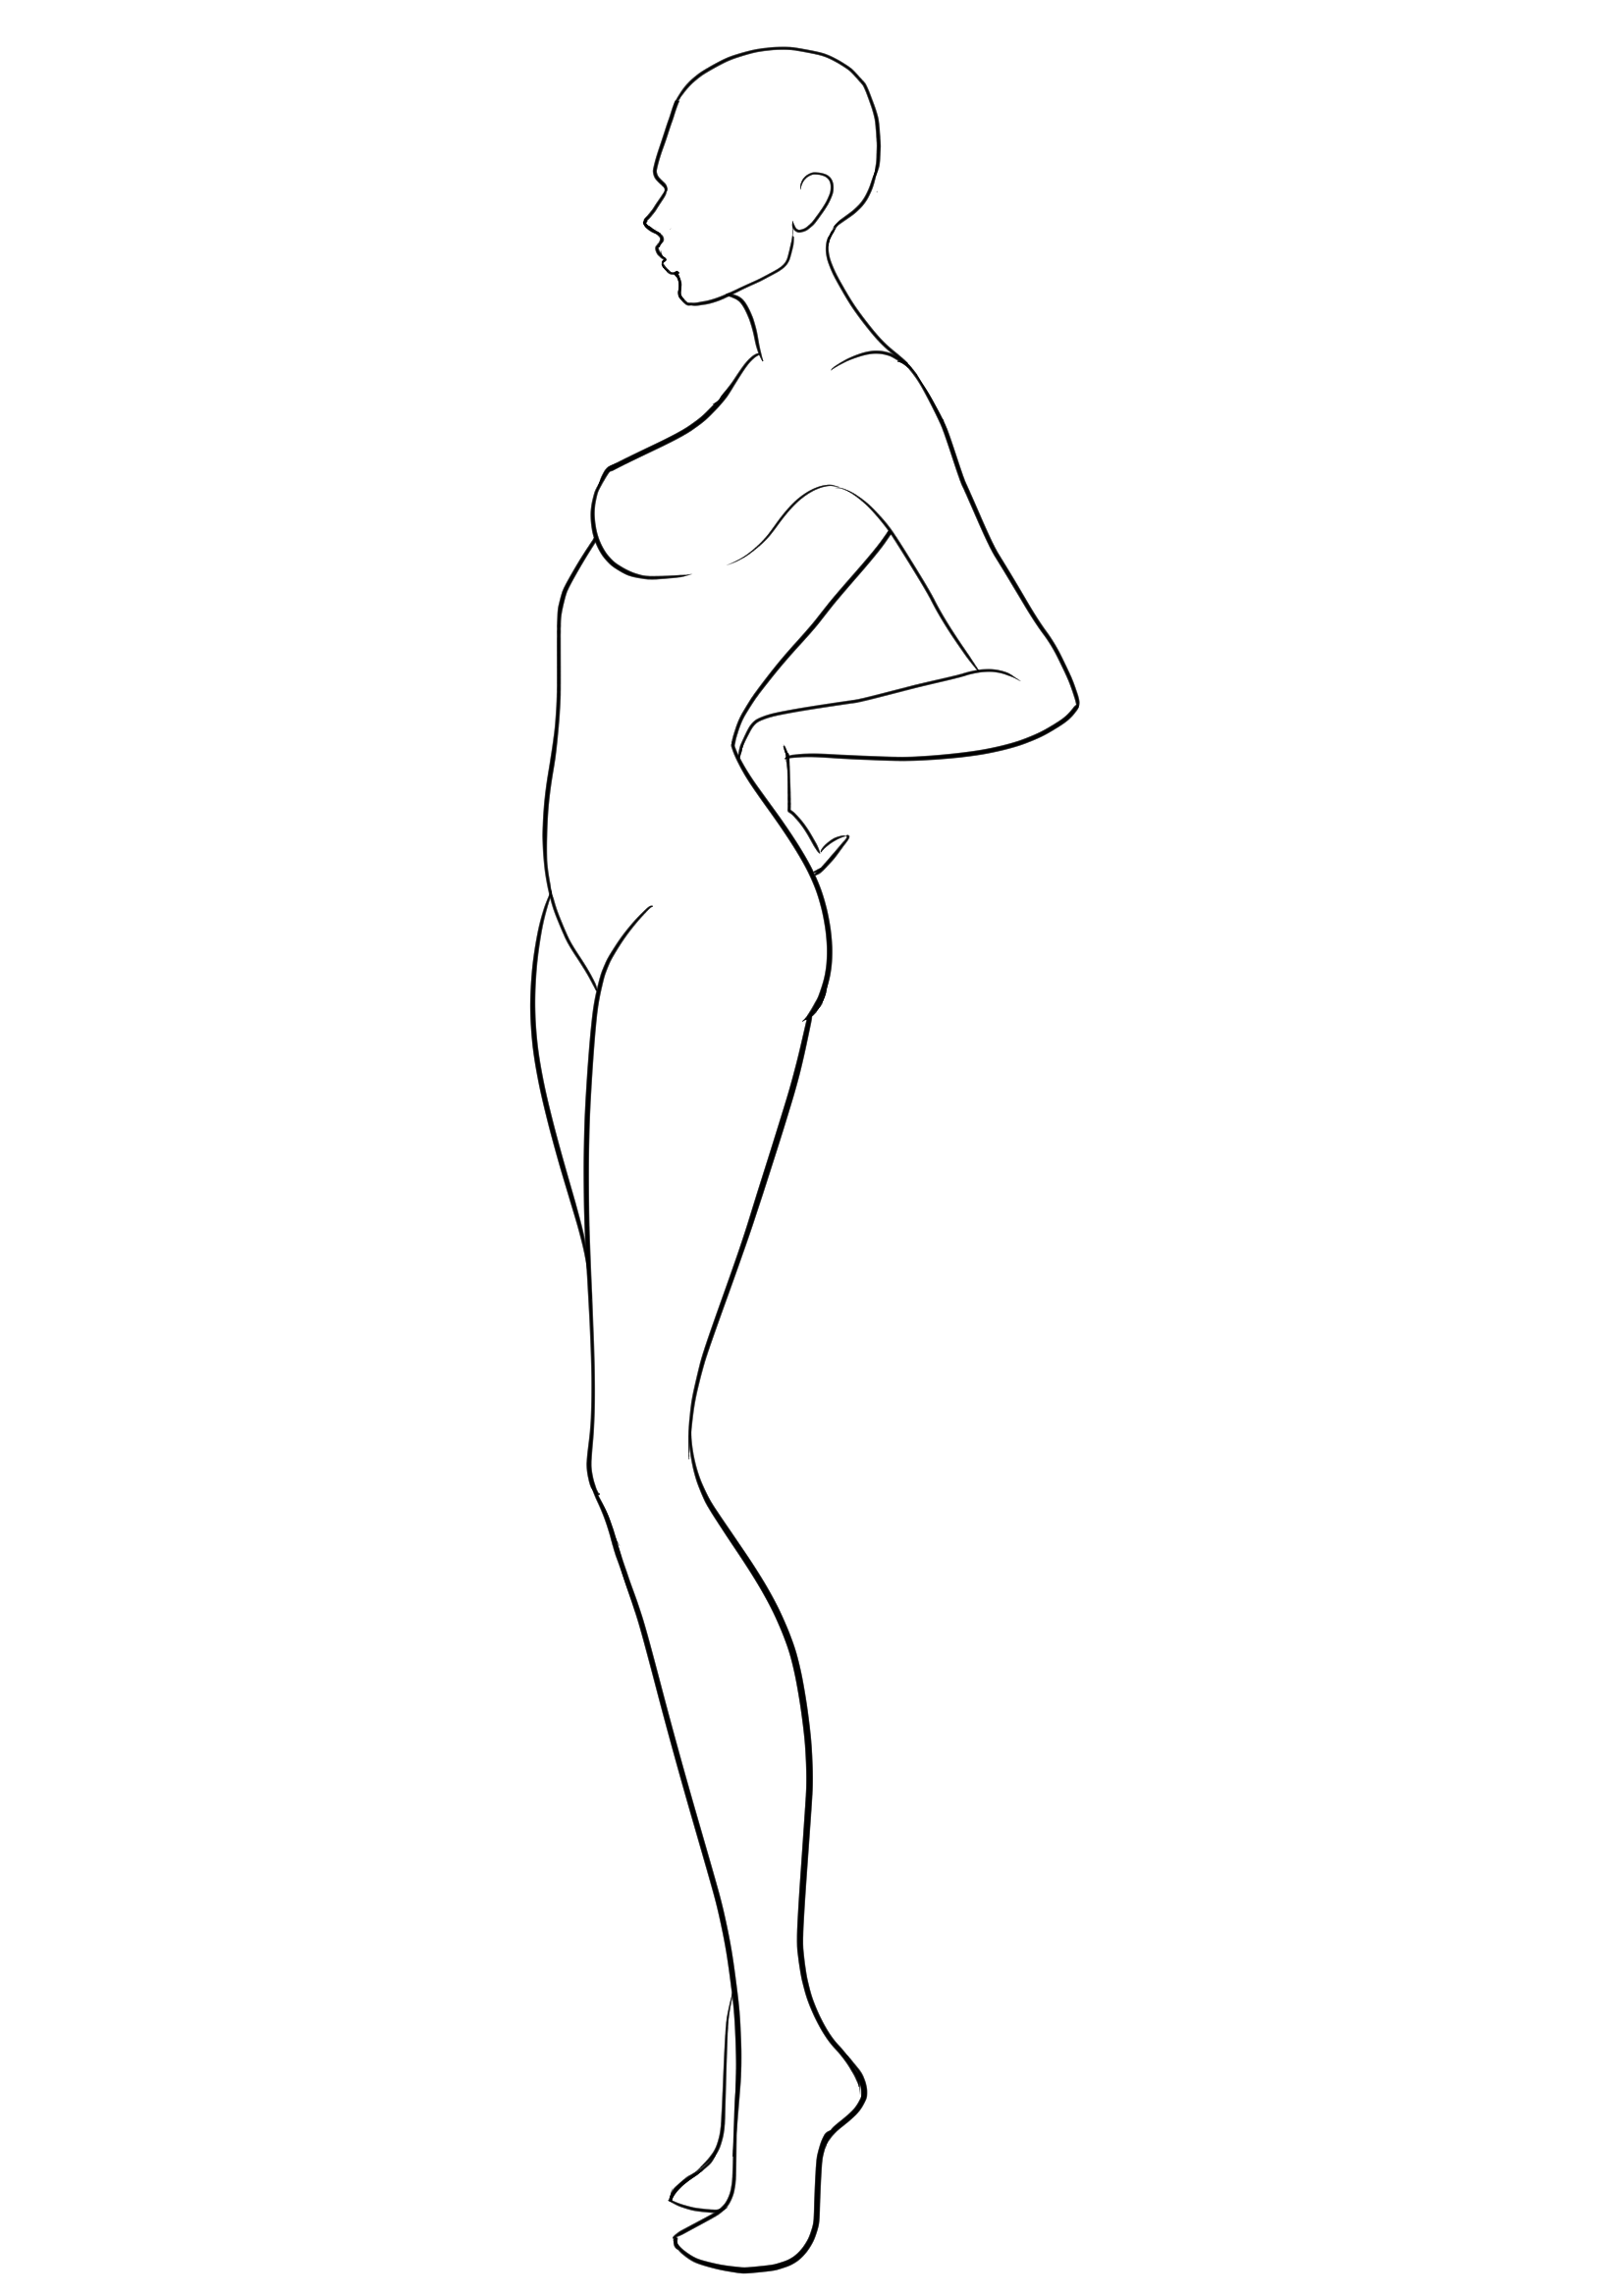 Body Drawing Png Side - Fashion Template #38. Side view fashion figure template. Blank ...